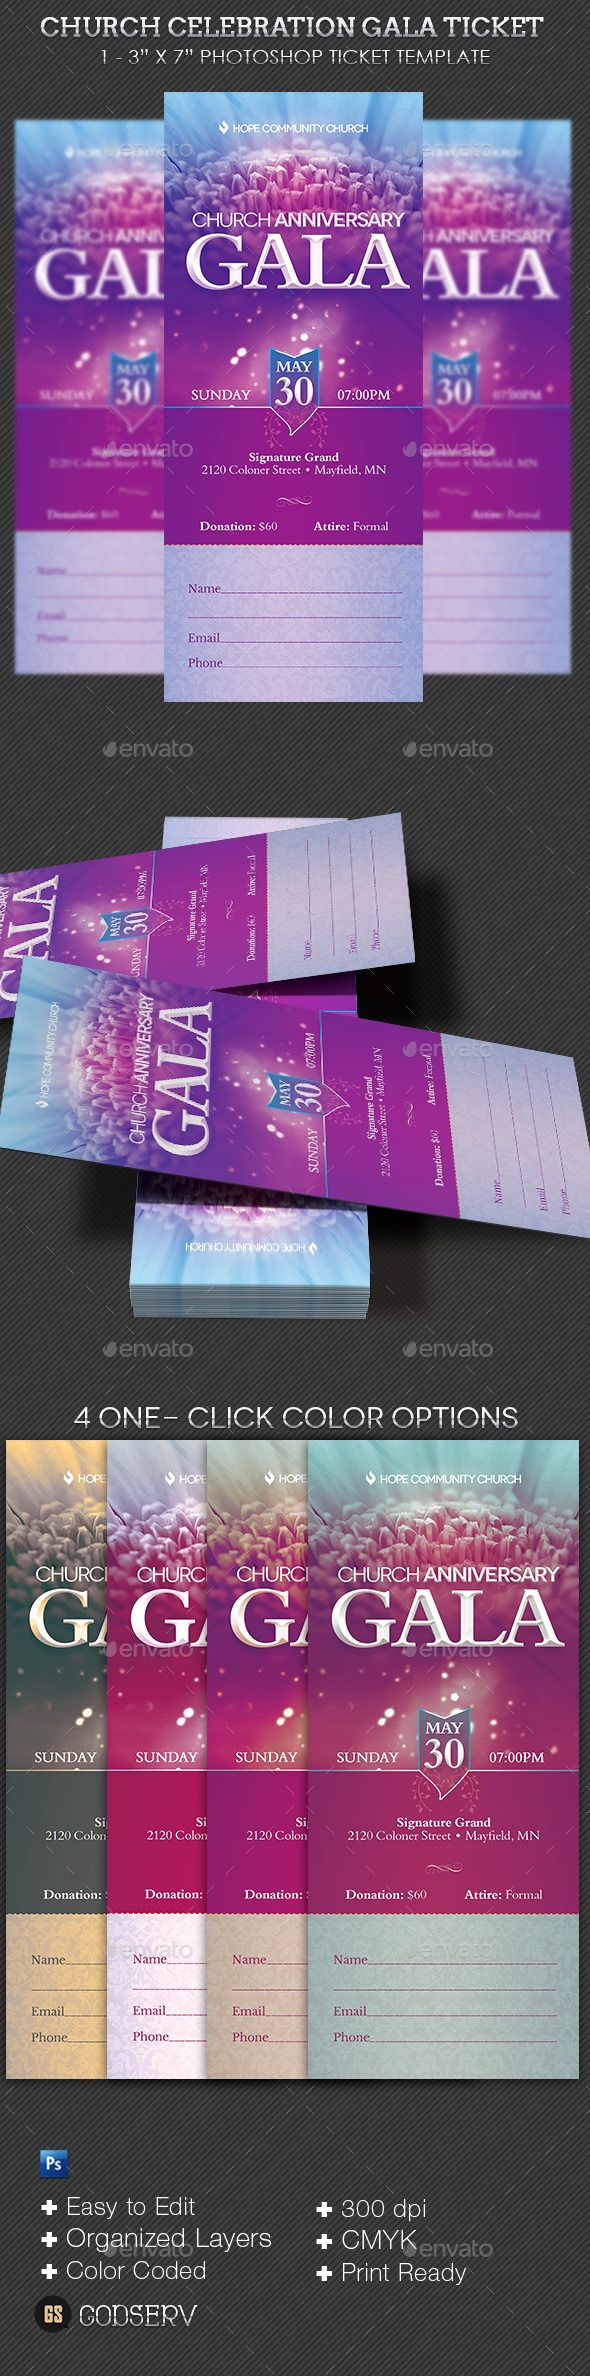 Church Celebration Gala Ticket Template PSD Download Here Graphicriver